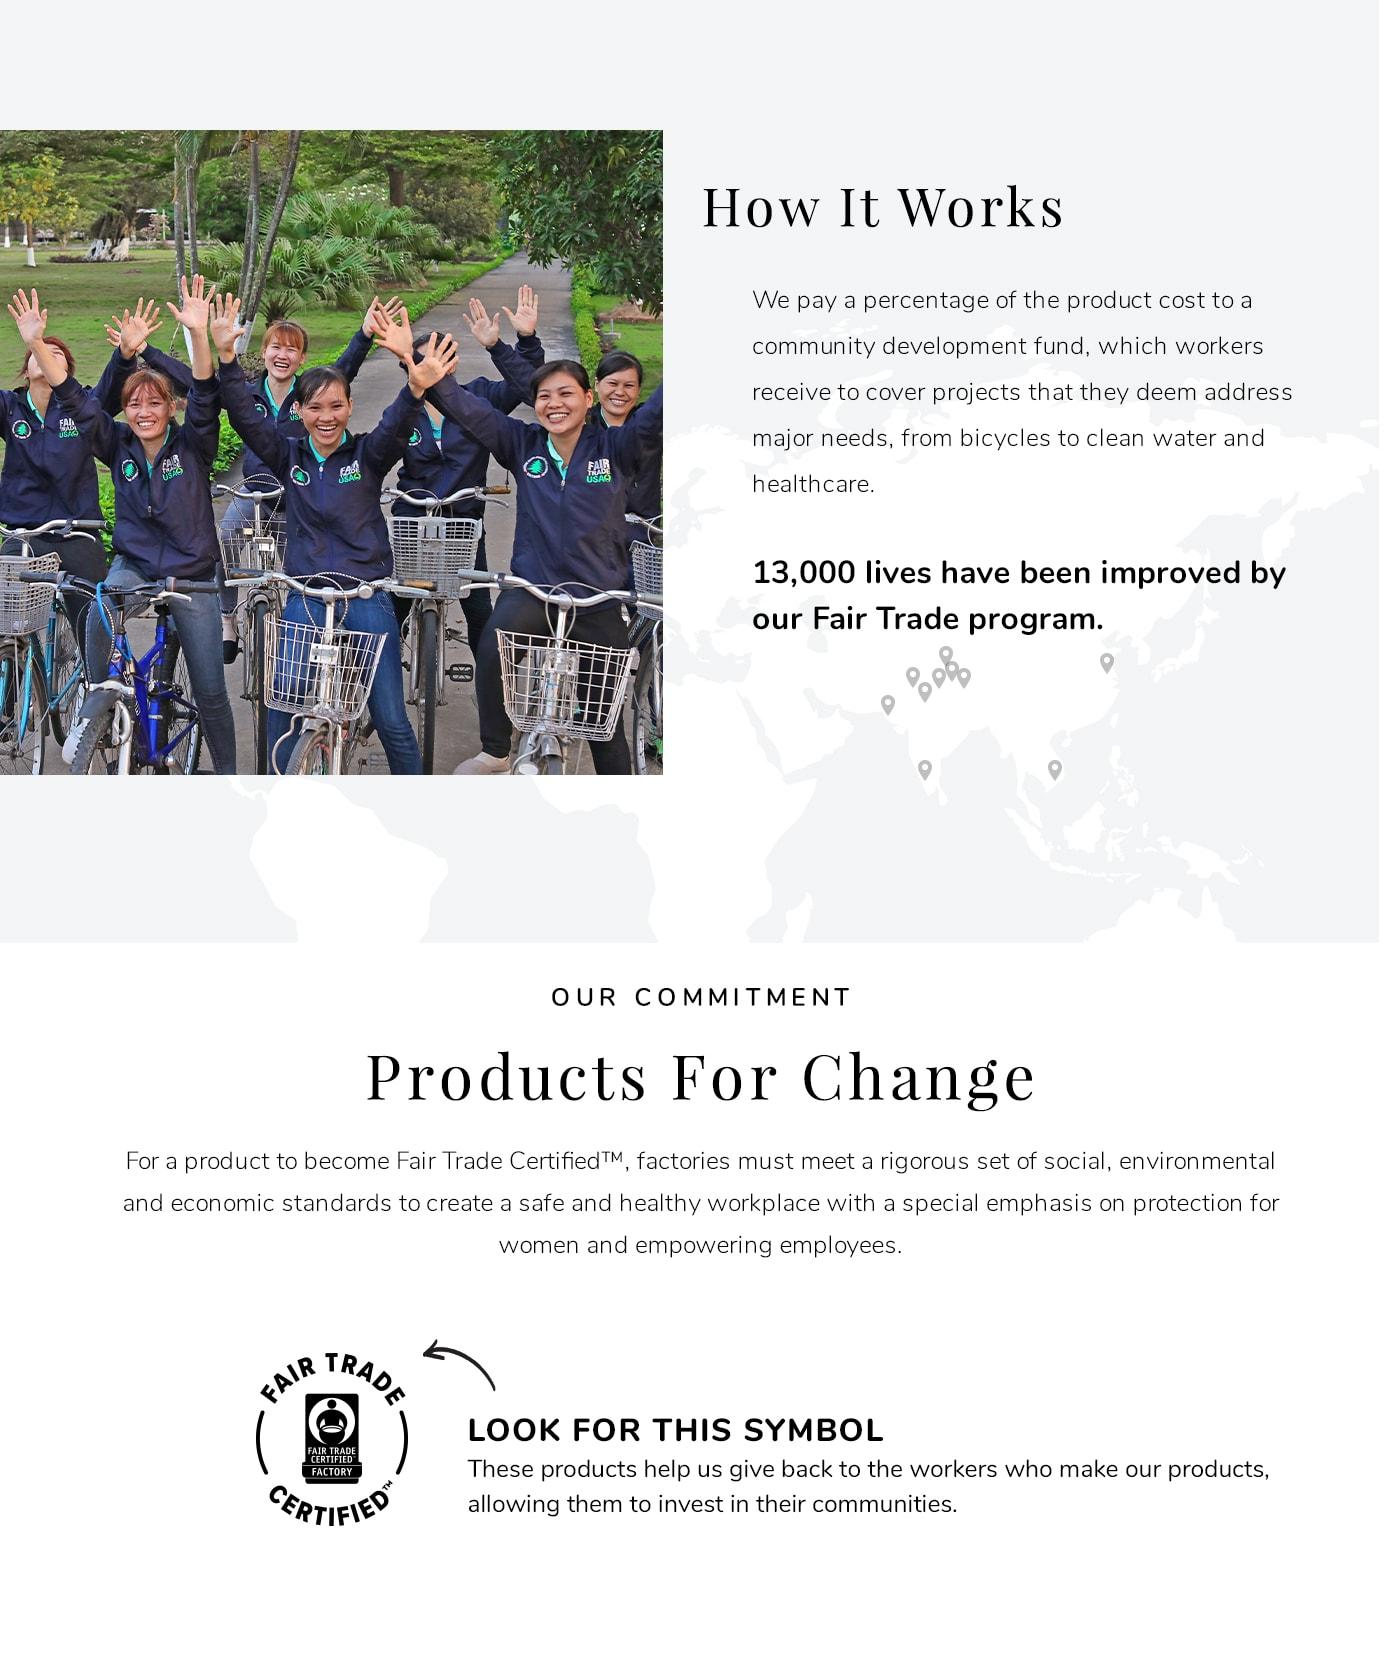 Products For Change